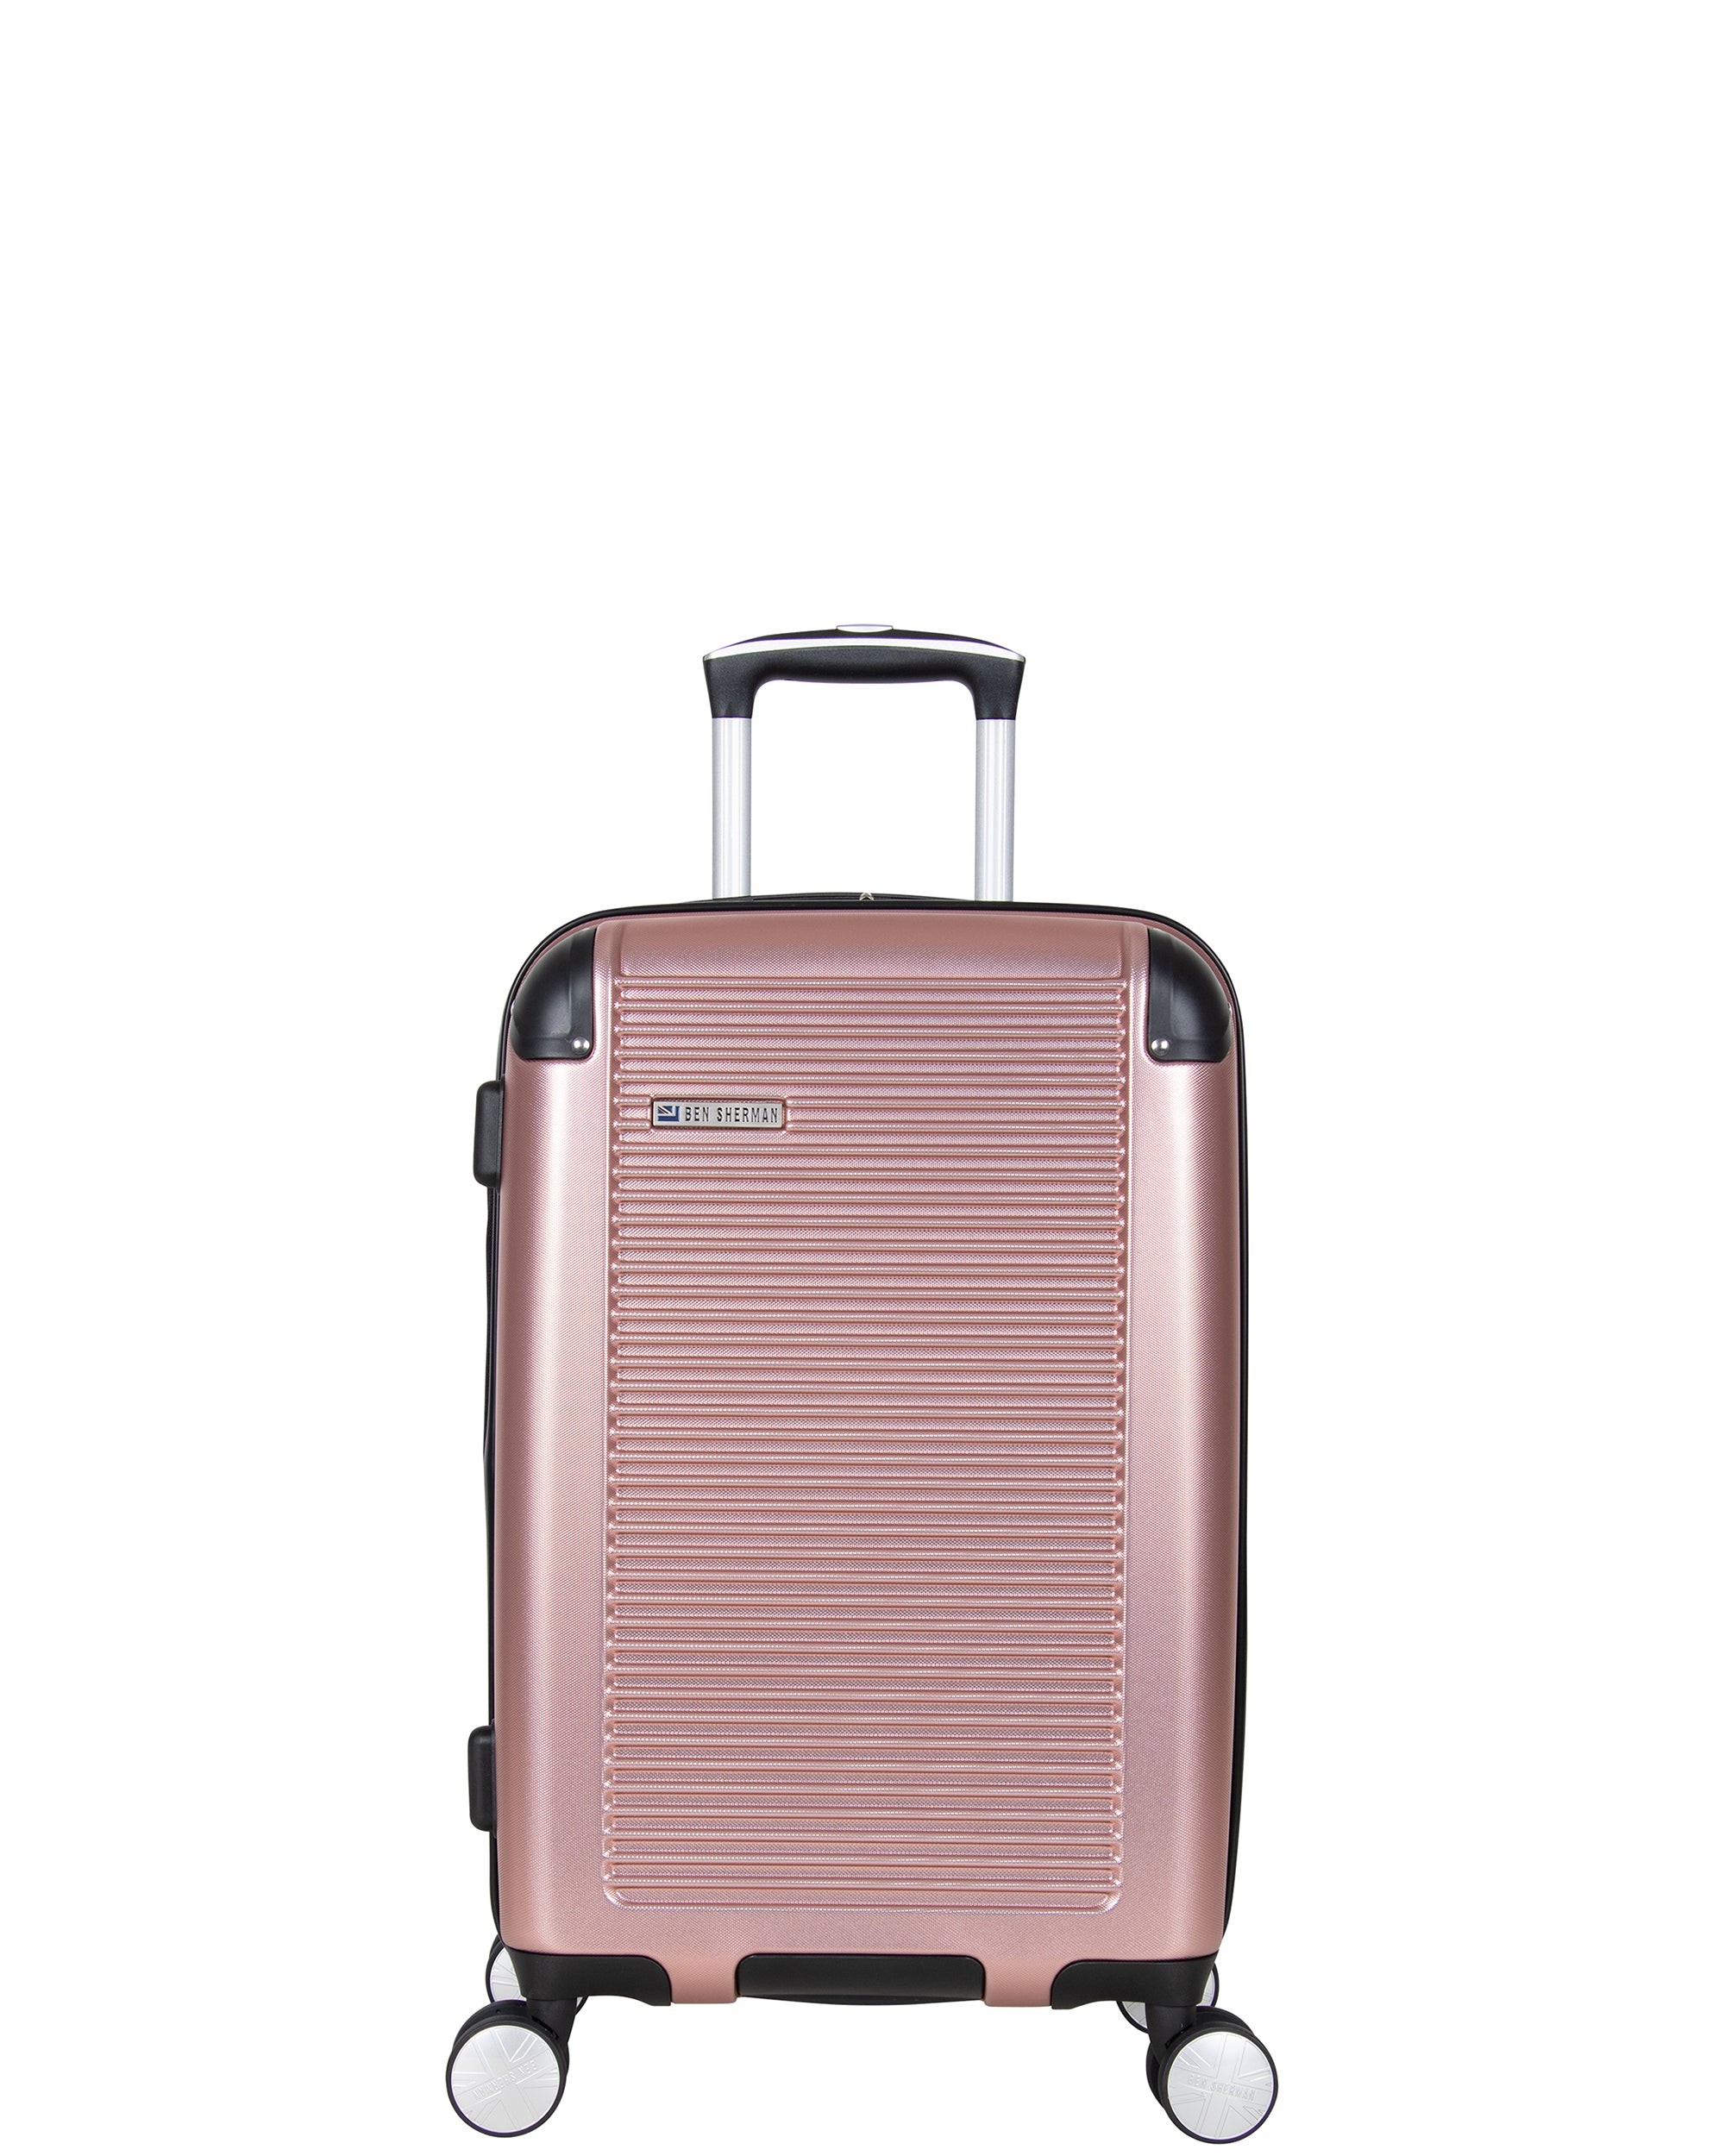 "Norwich 20"" Hardside Expandable Carry-On Luggage - Rose Gold"